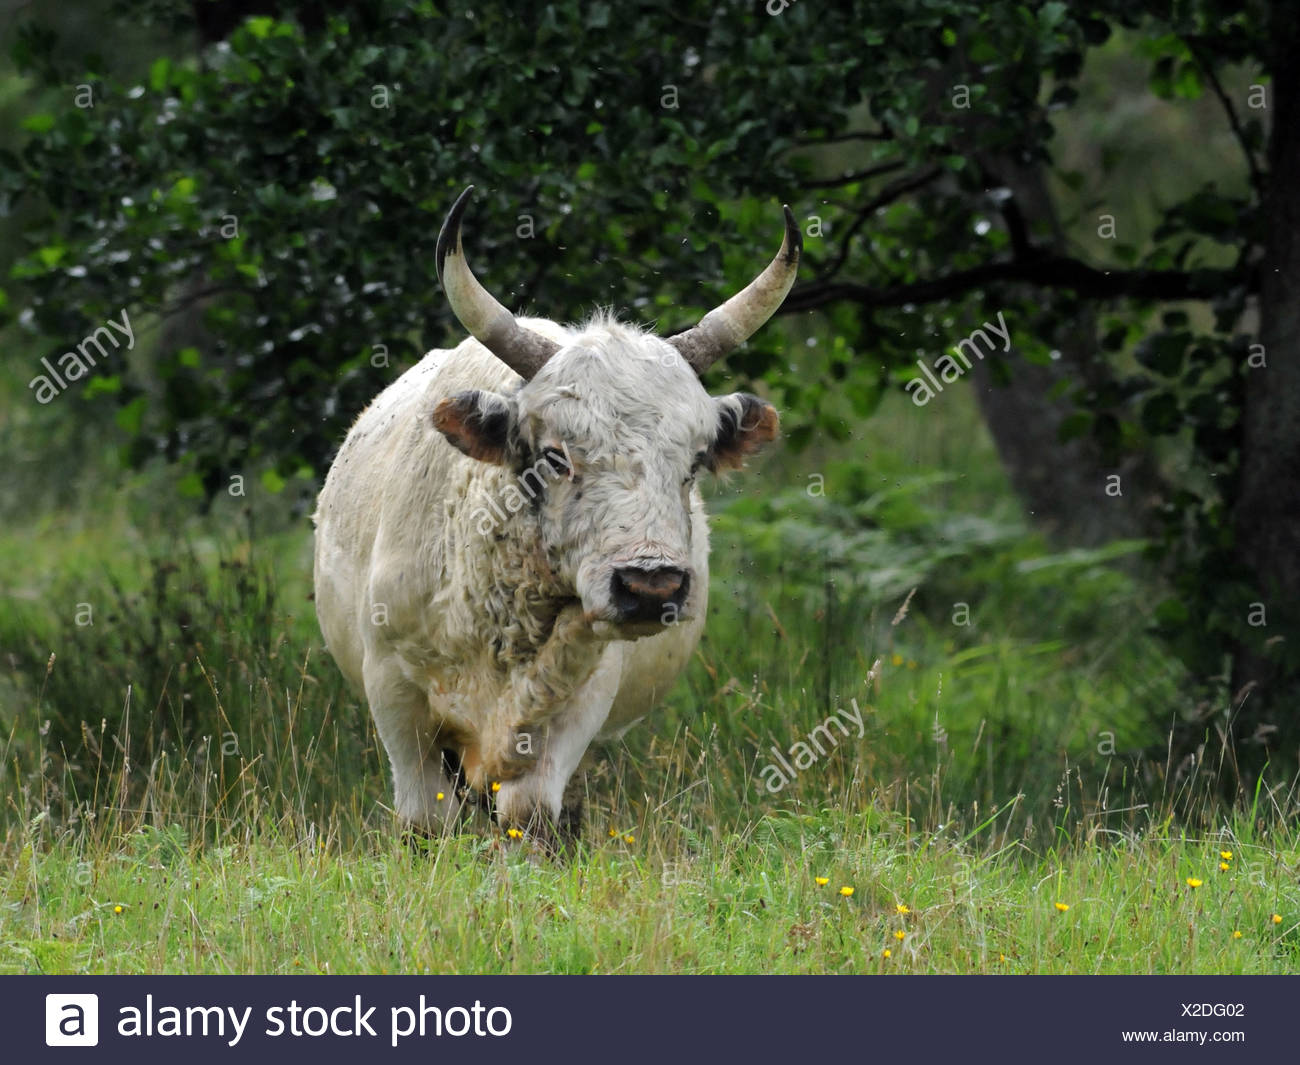 The wild cattle of Chillingham, Northumberland which are an endangered breed of cattle. - Stock Image